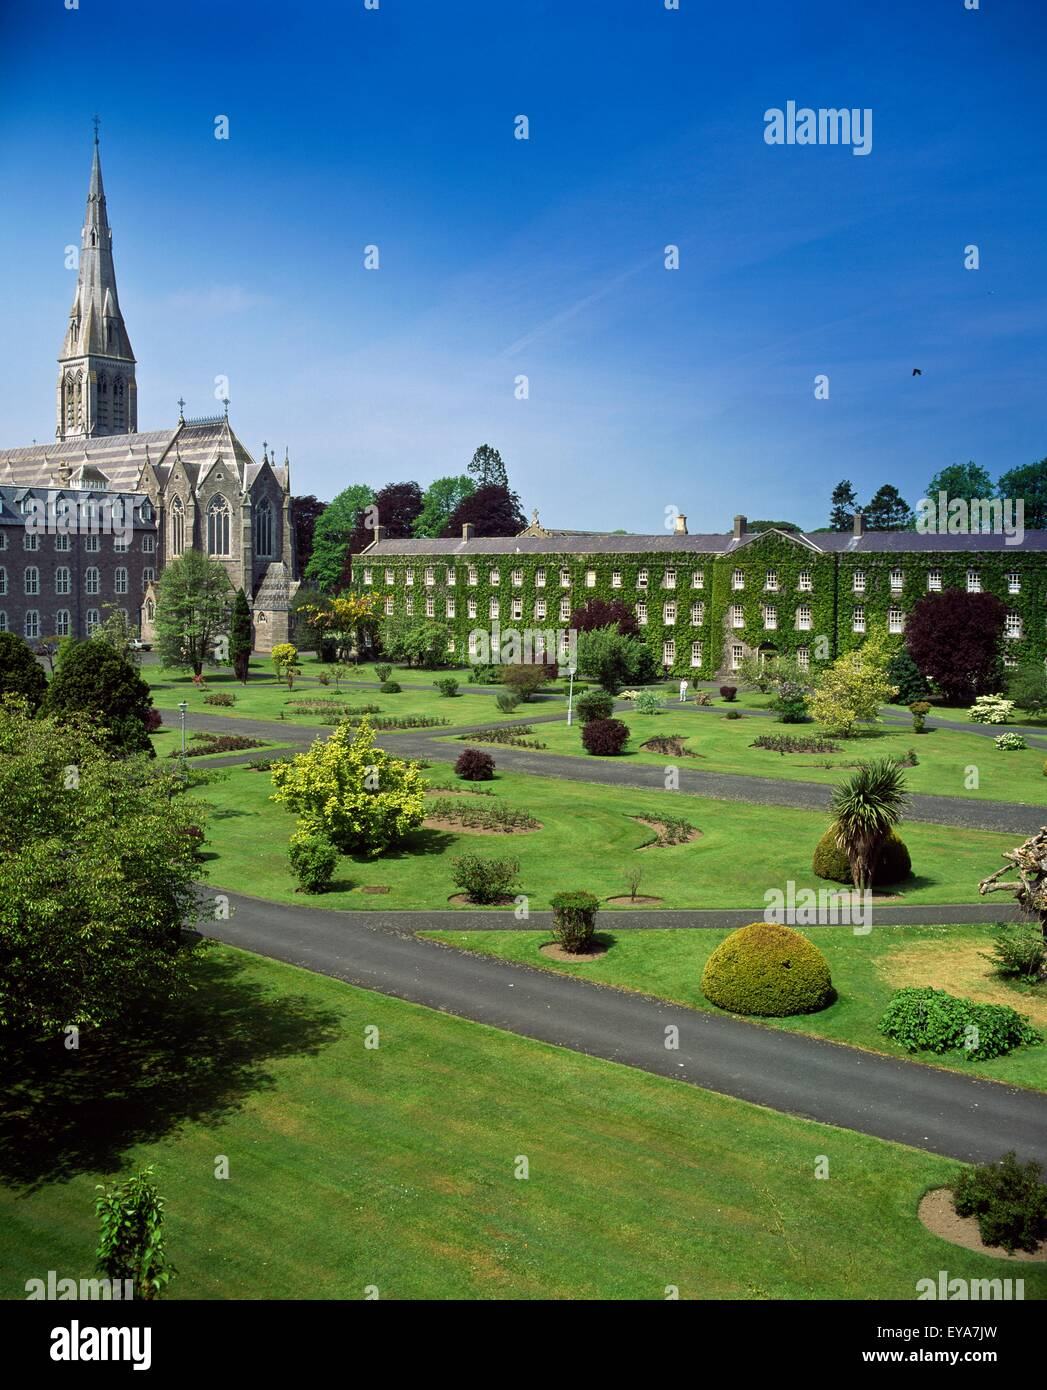 Formal Garden In Front Of A College, St. Patrick's College, Maynooth, County Kildare, Republic Of Ireland - Stock Image